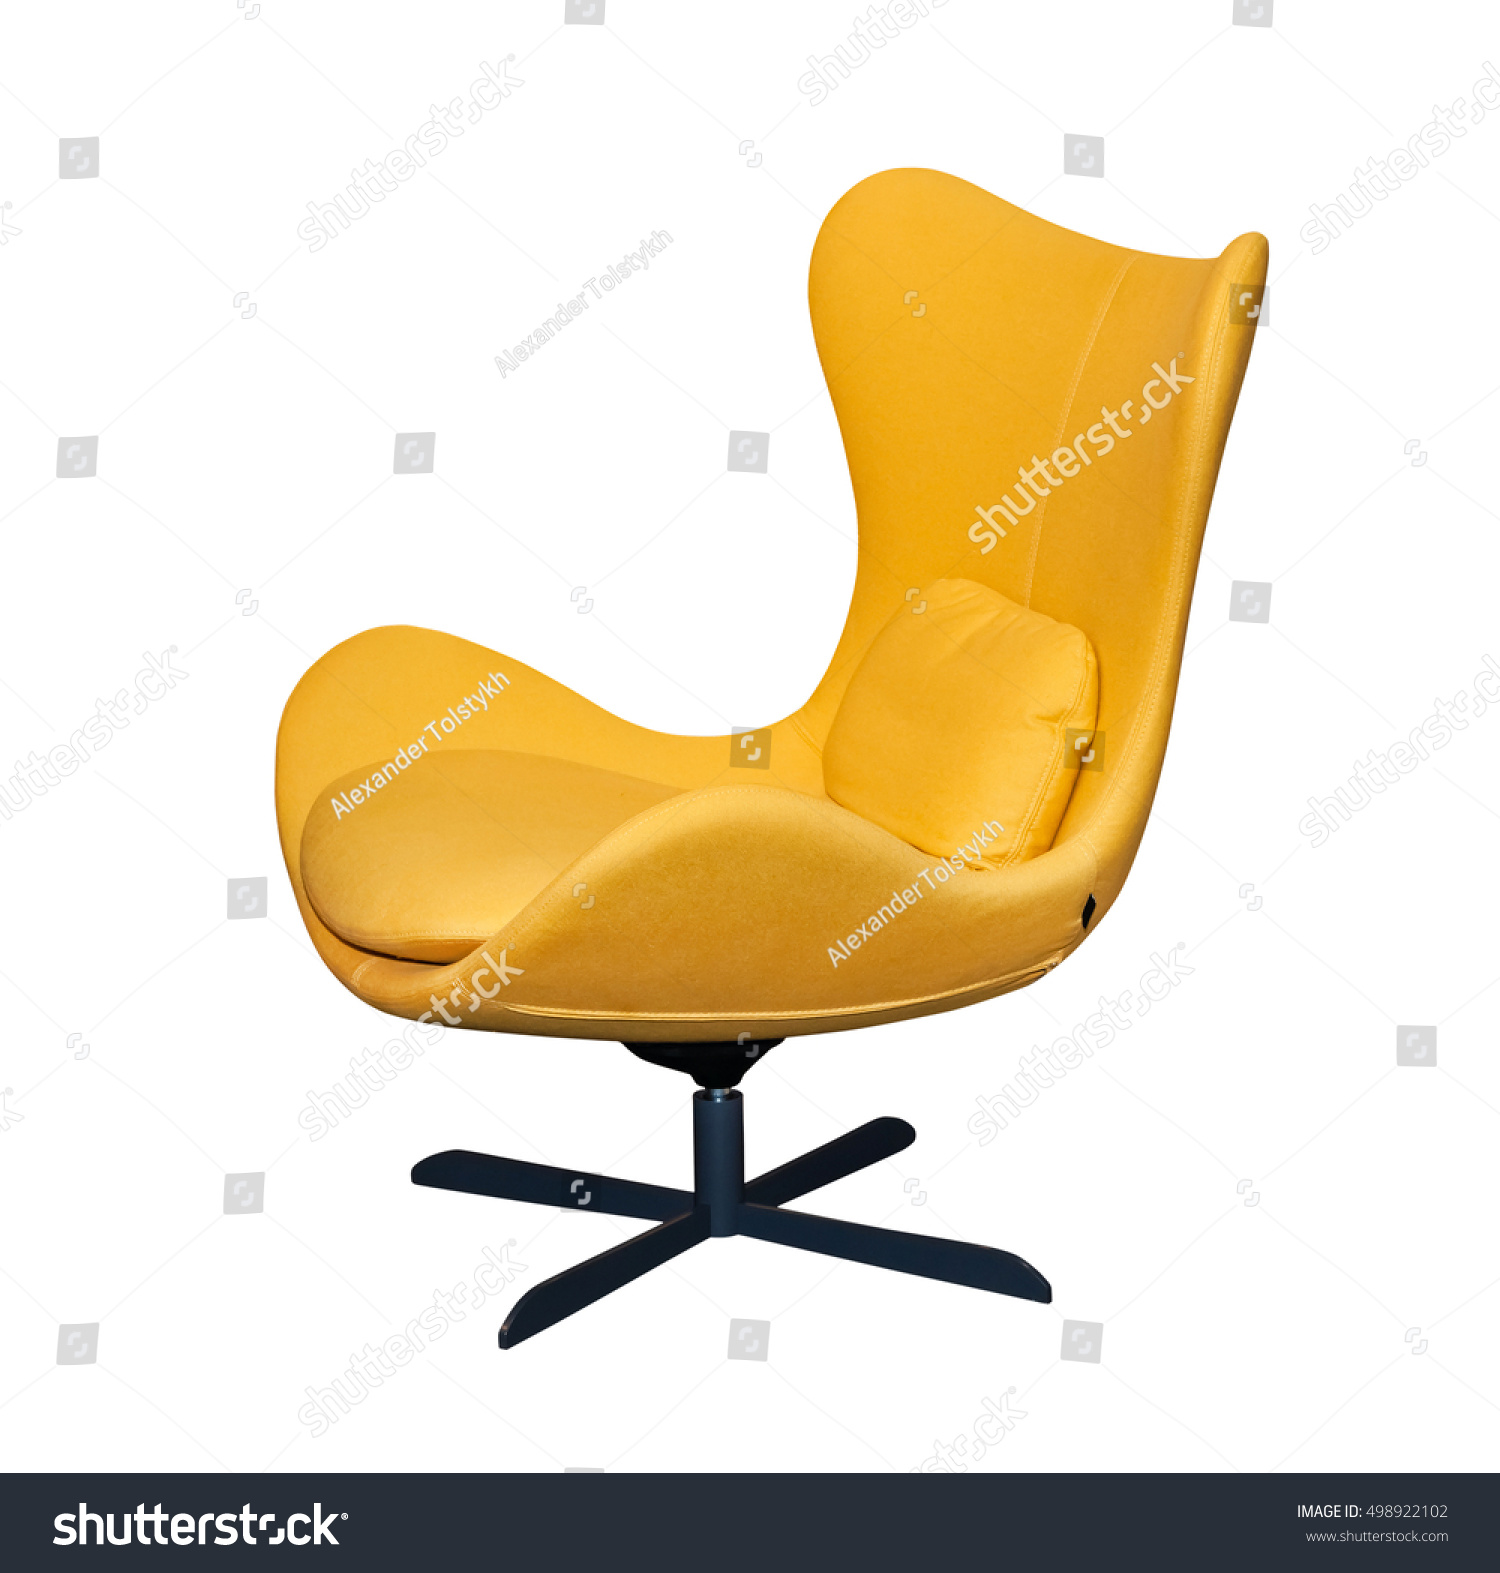 Spinning Yellow fice Chair Isolated Stock